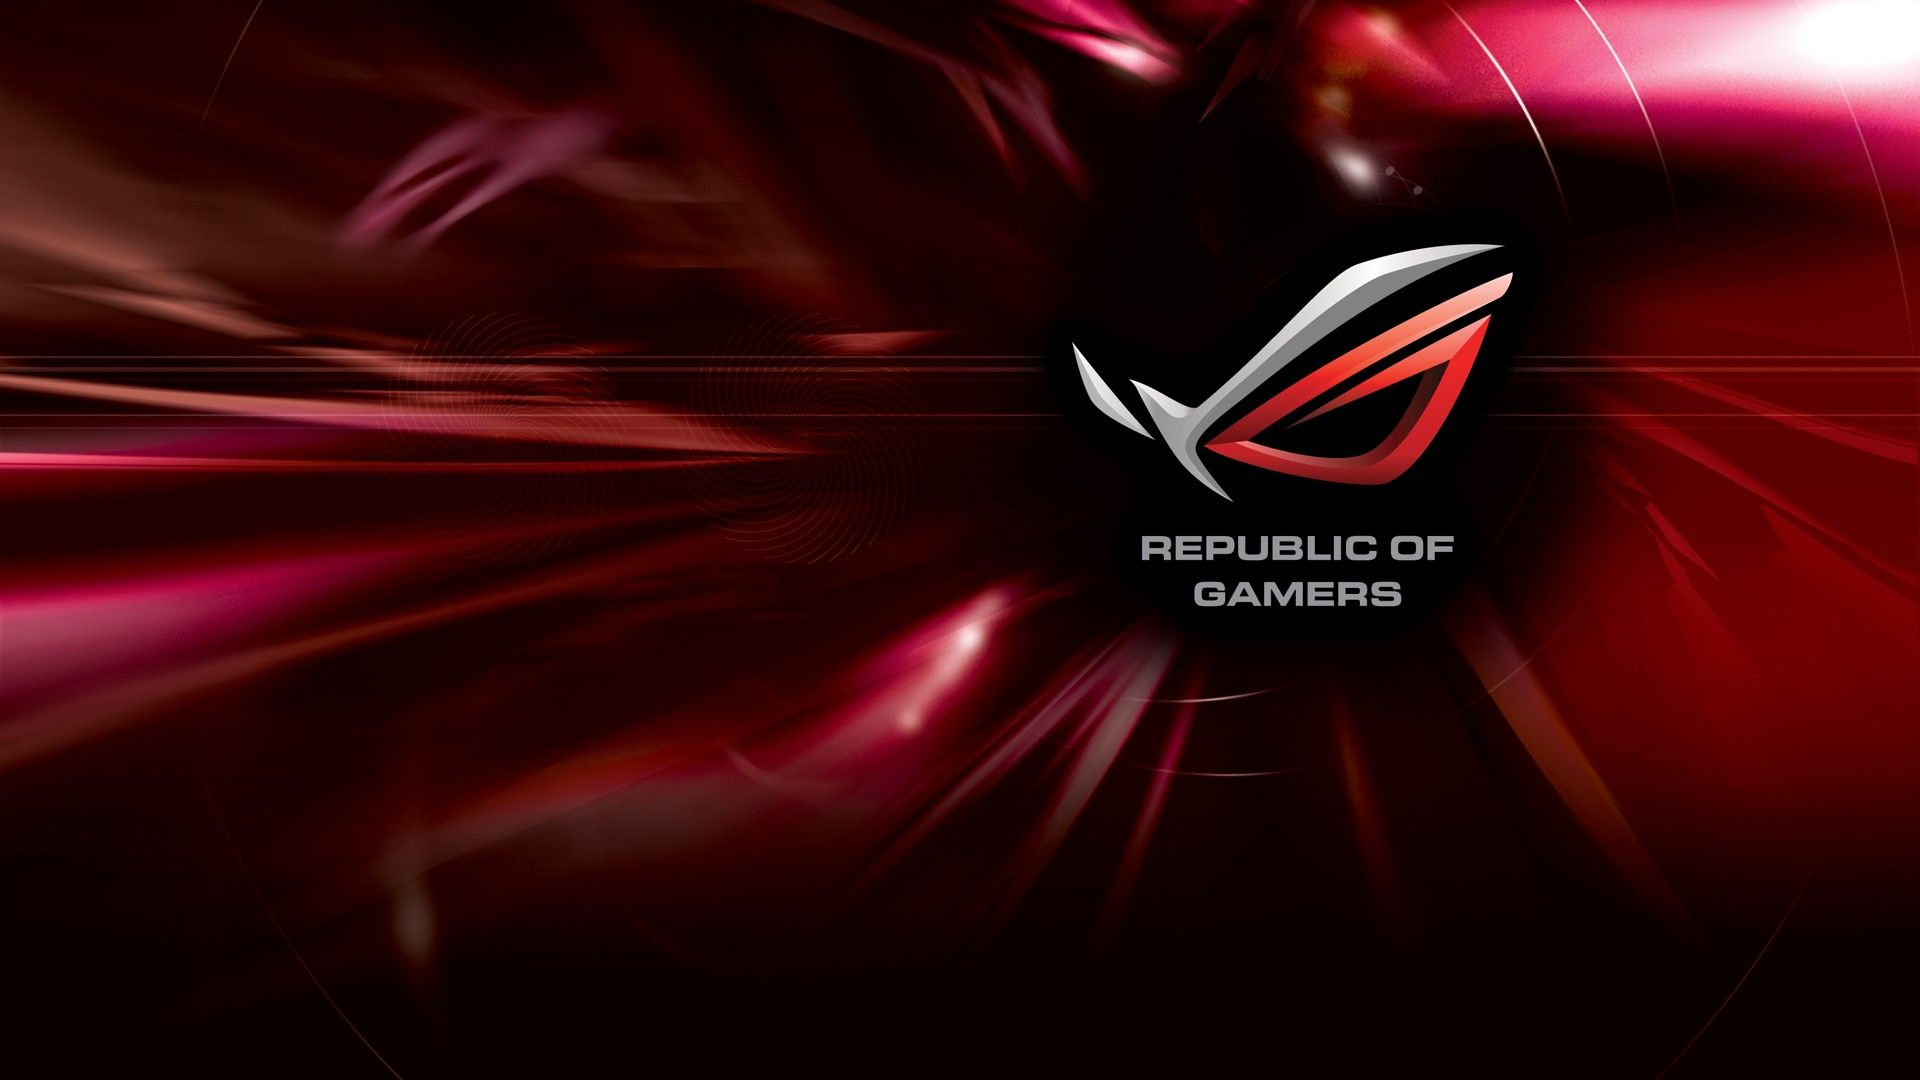 HD Republic of Gamers Wallpapers 1920x1080